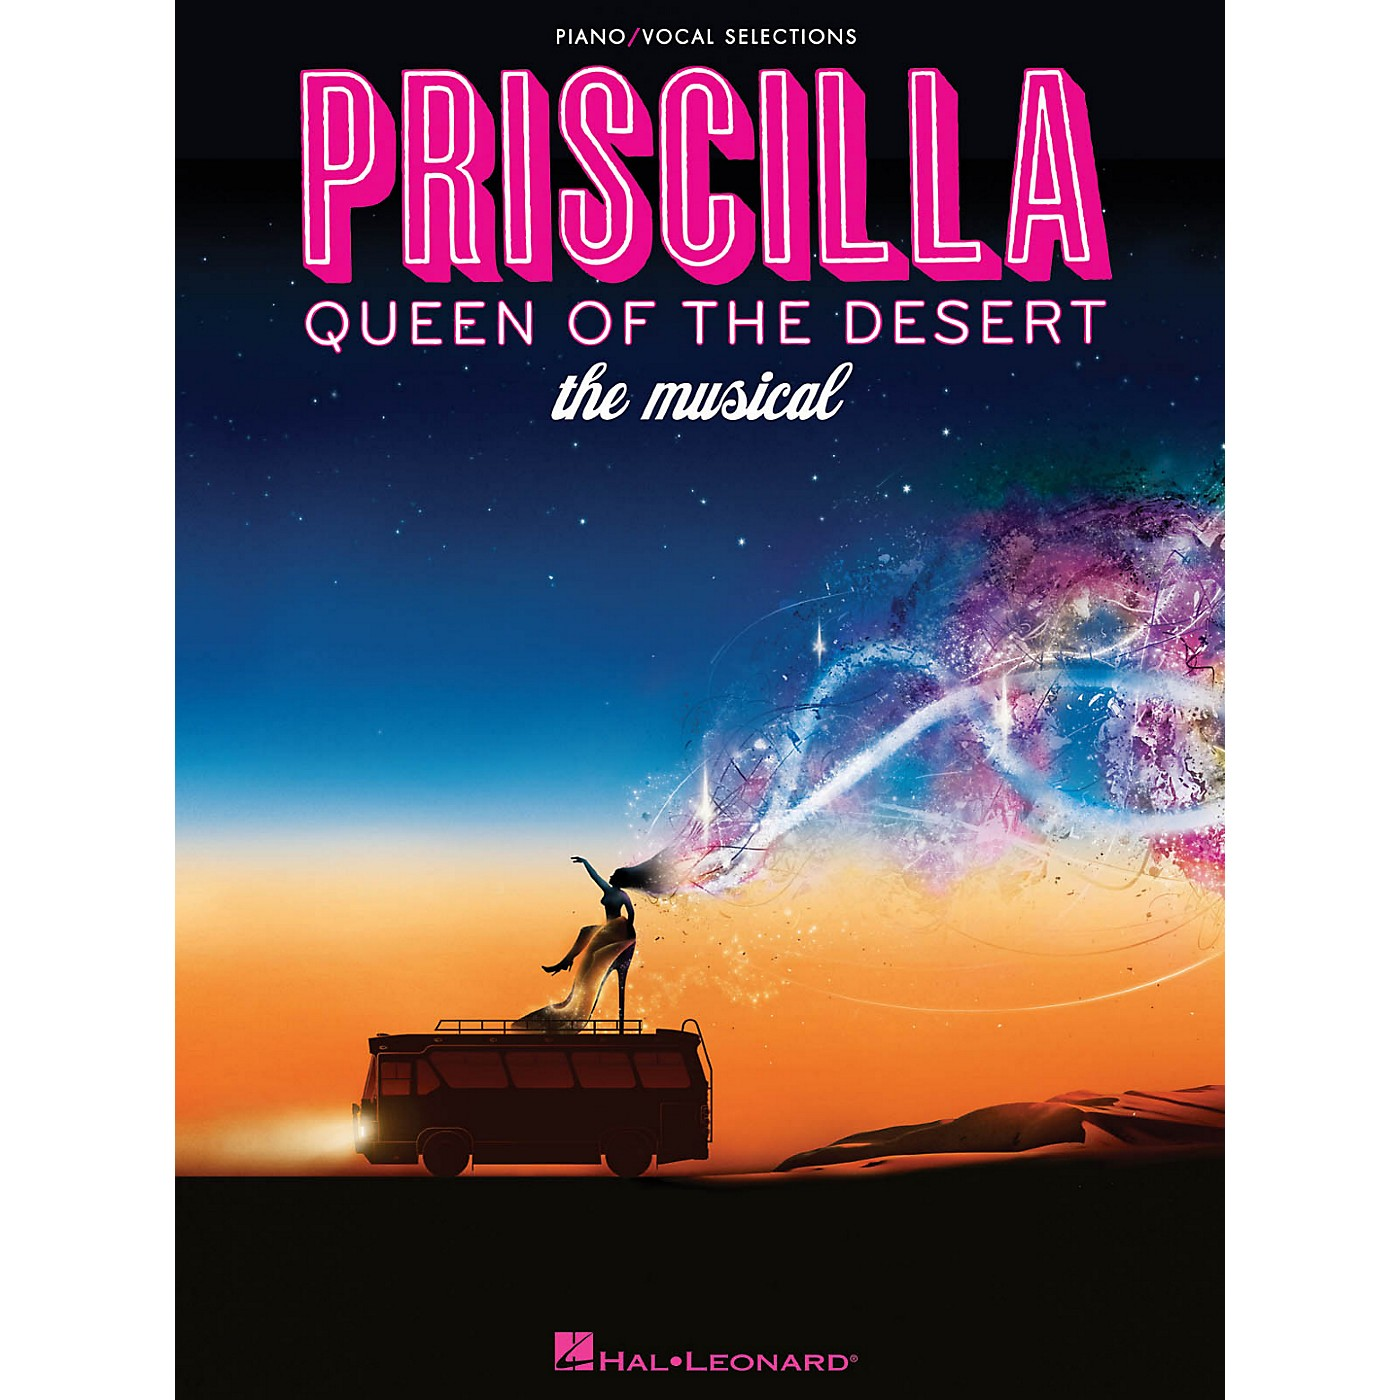 Hal Leonard Priscilla, Queen Of The Desert - The Musical for Piano/Vocal Selections thumbnail